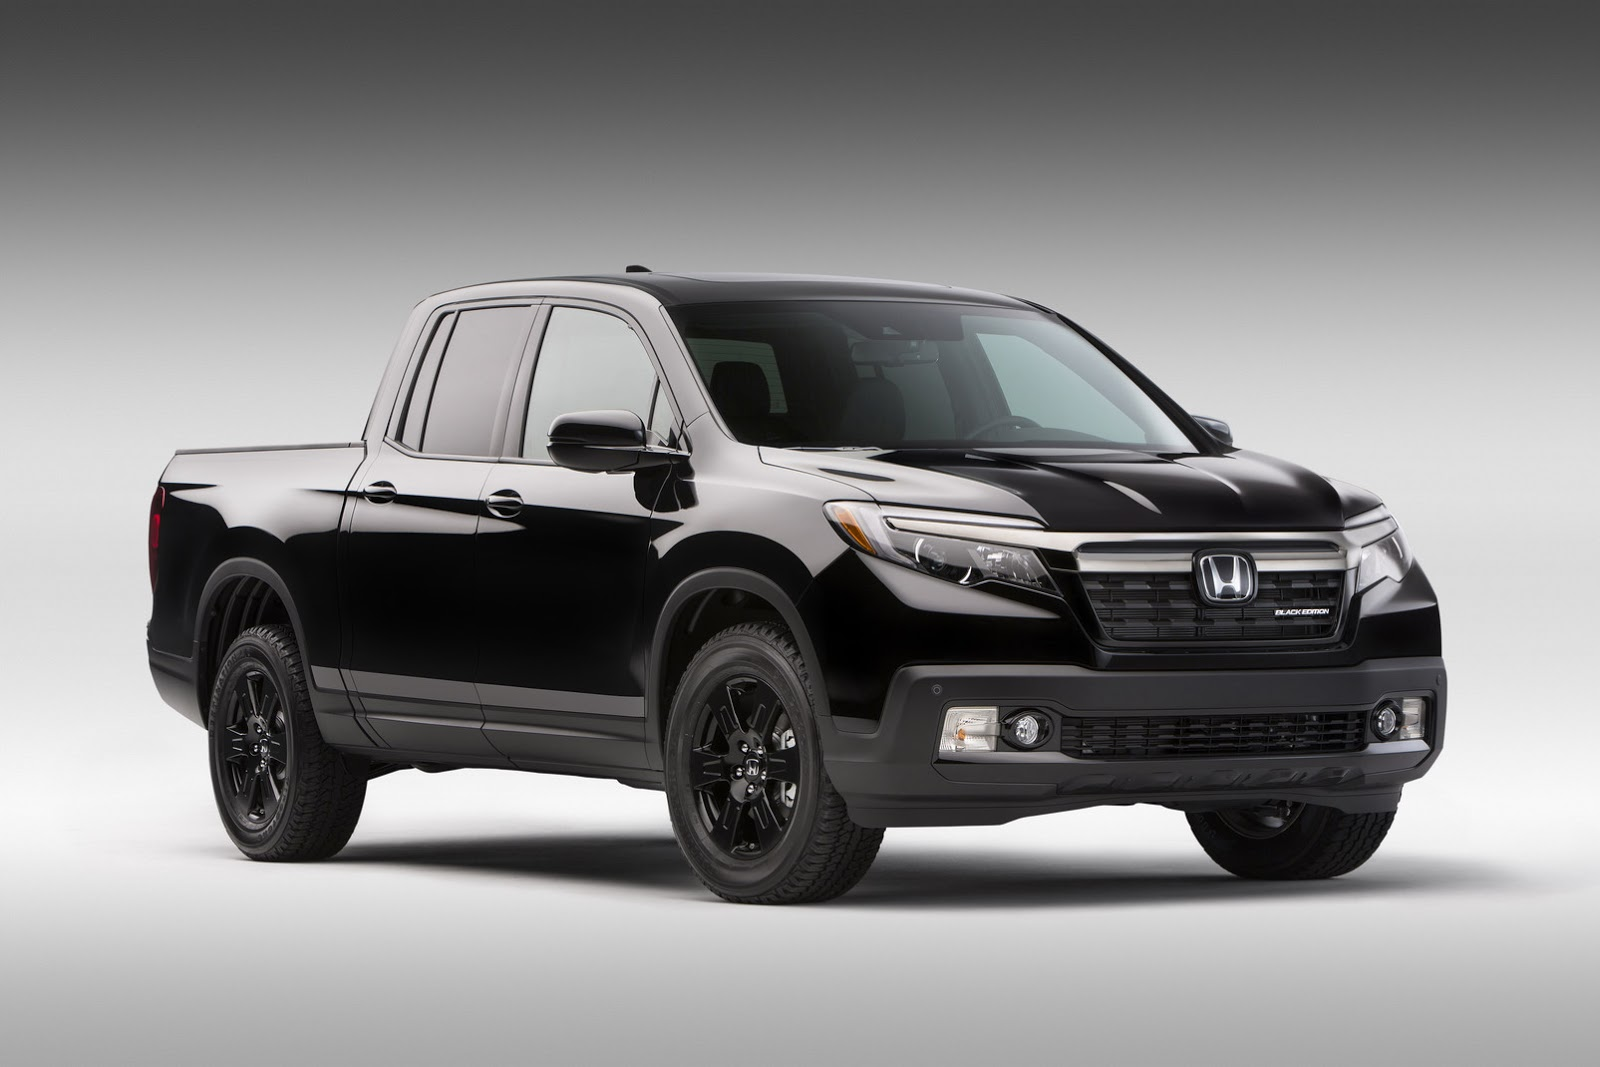 Next Generation Ridgeline Thoughts And Opinions   Page 11   Honda Ridgeline  Owners Club Forums